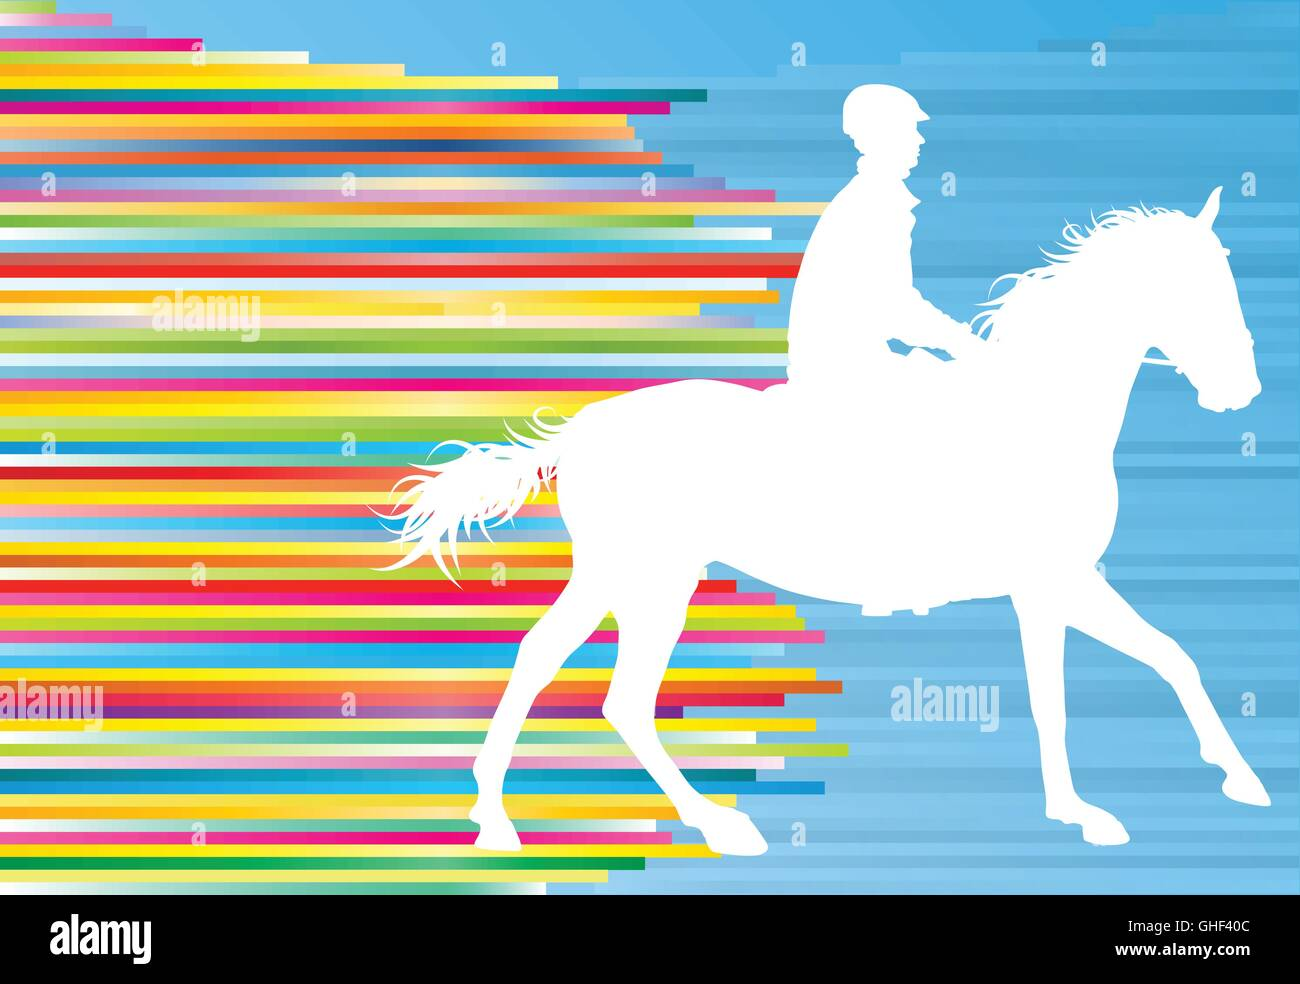 Equestrian sport horse jumping vector abstract illustration background with colorful lines - Stock Vector